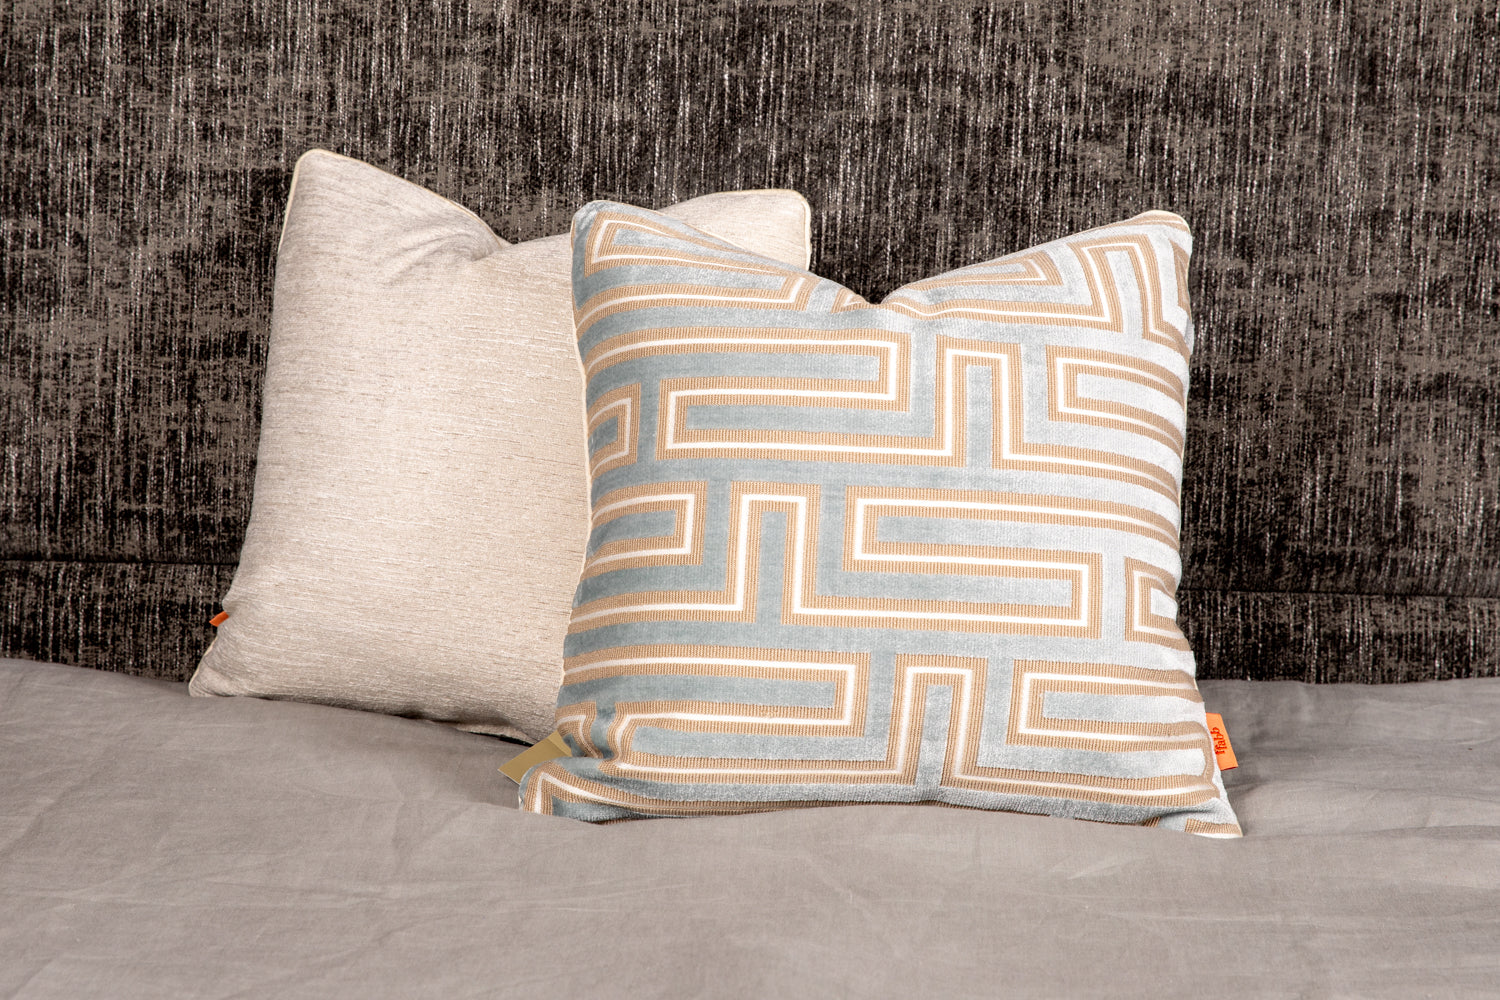 ffabb toss pillows, RADG & Maxwell fabrics, velvet geometric pattern with piped trim